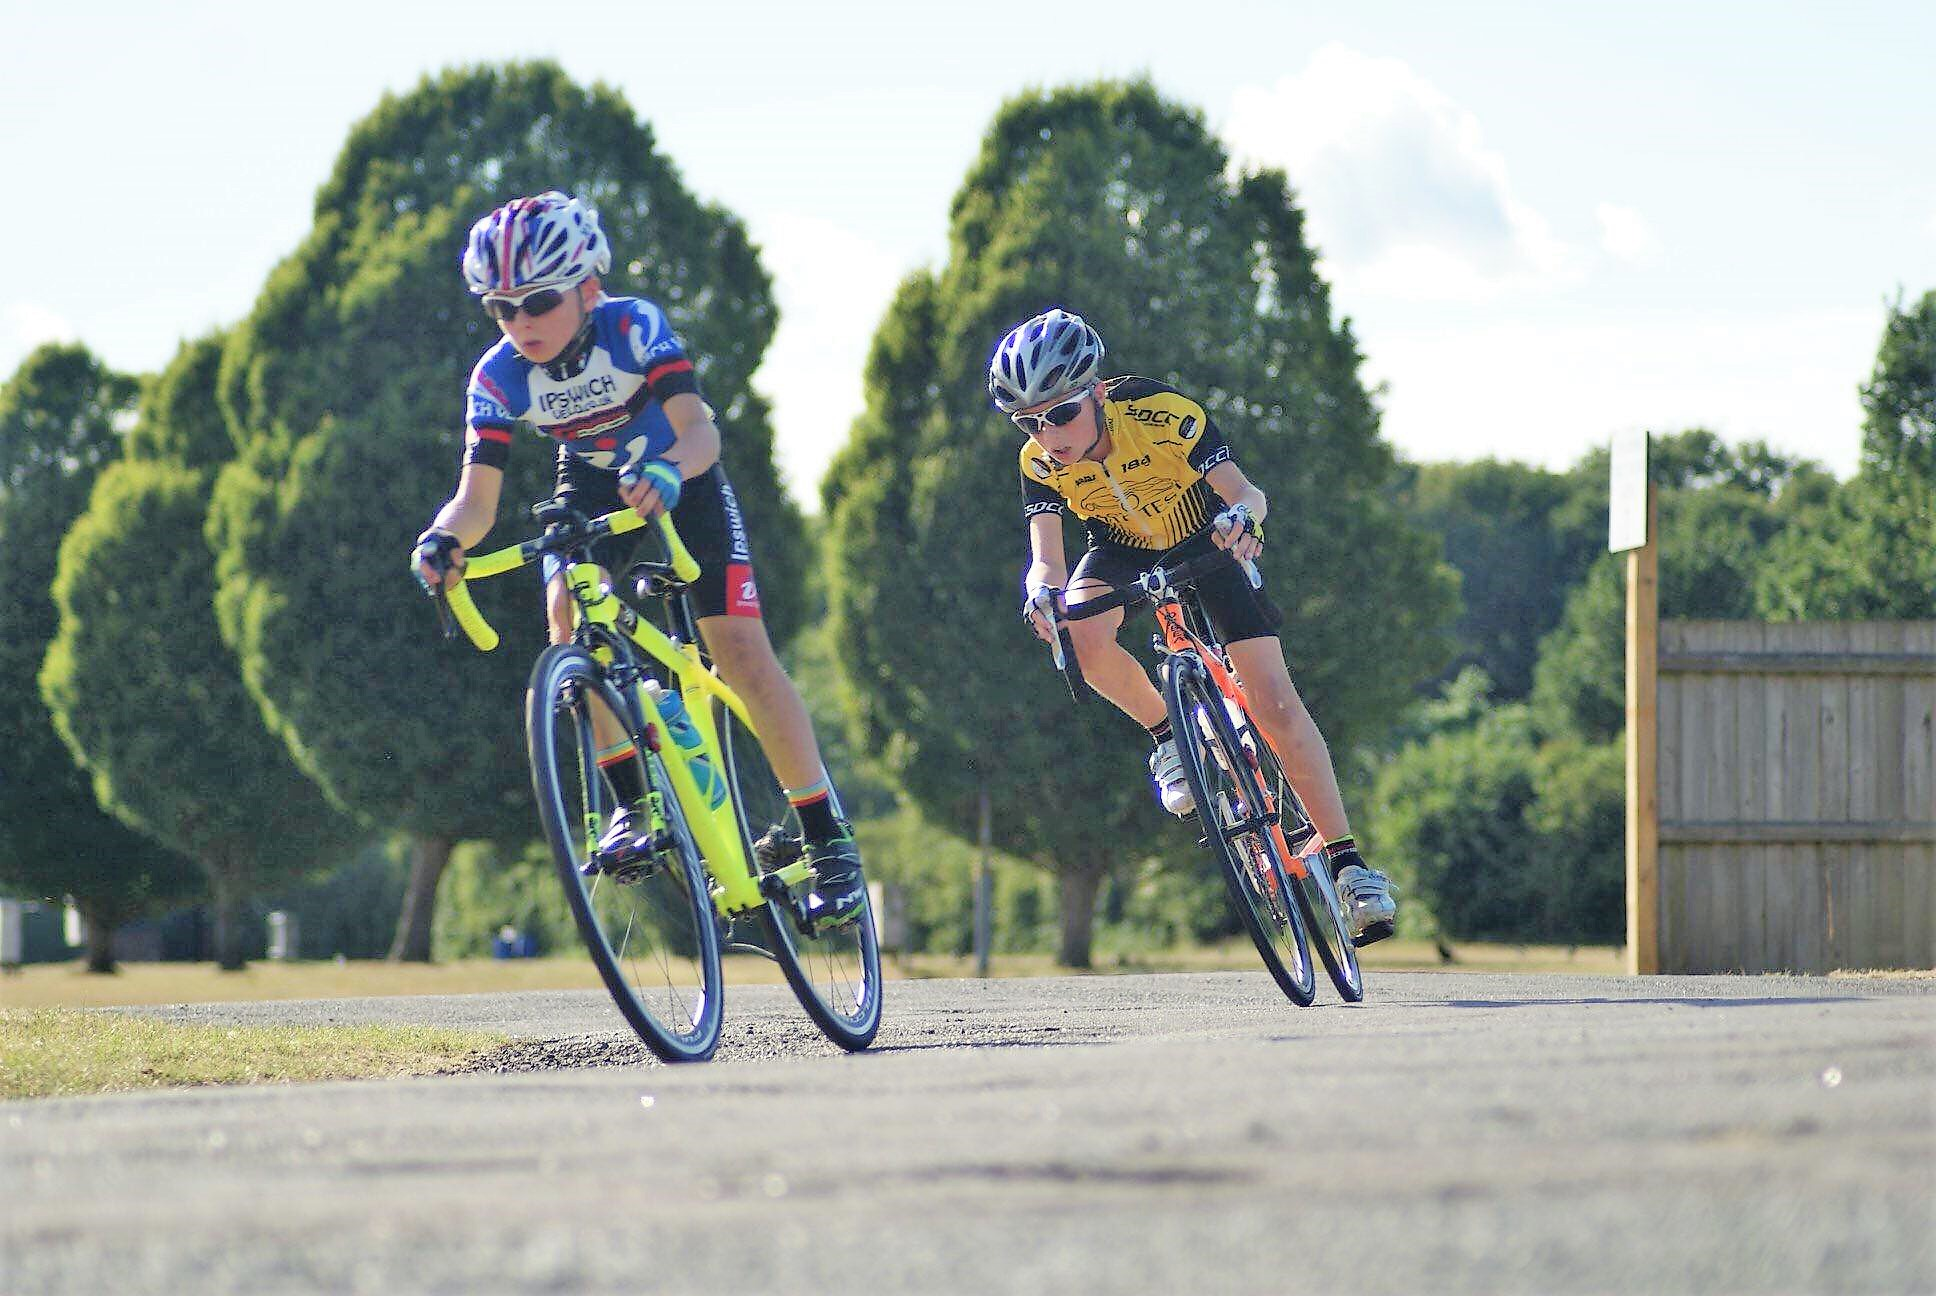 Ben coming top 3 at Trinity Park in 2018